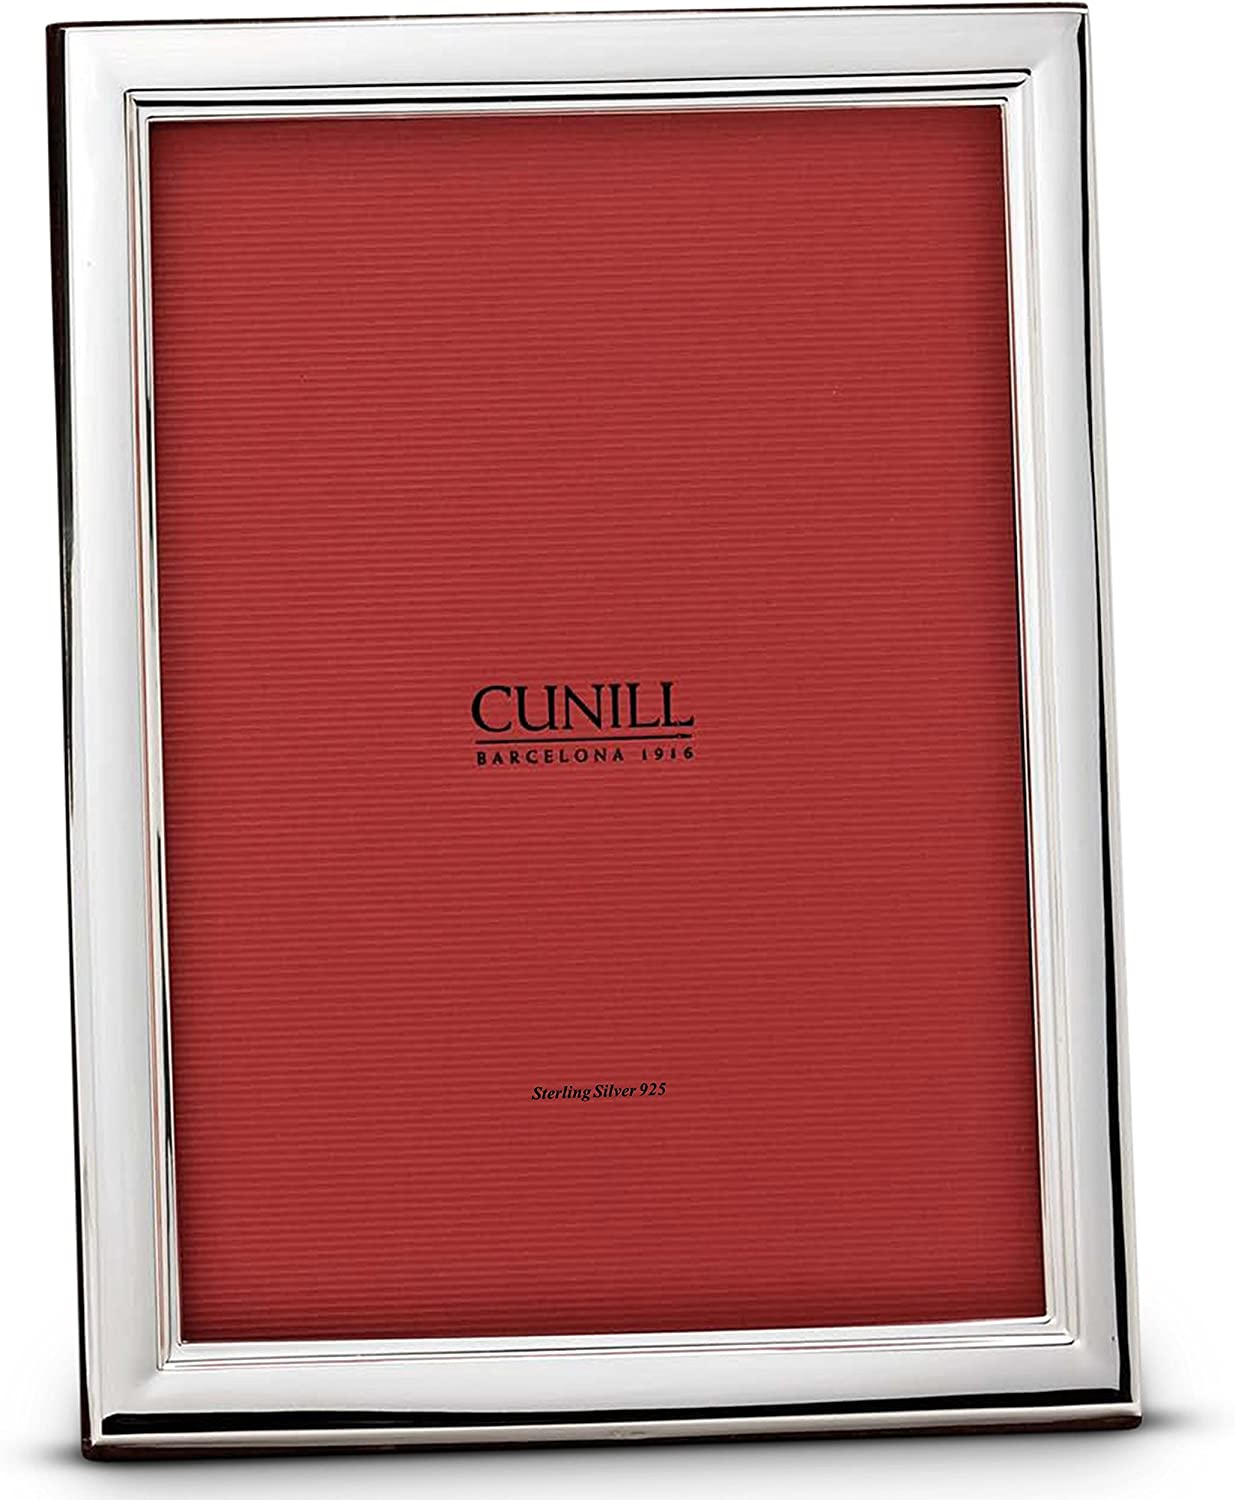 Cunill Danube Sterling Don't miss the campaign Silver Credence Engravable Picture Frame 8x10